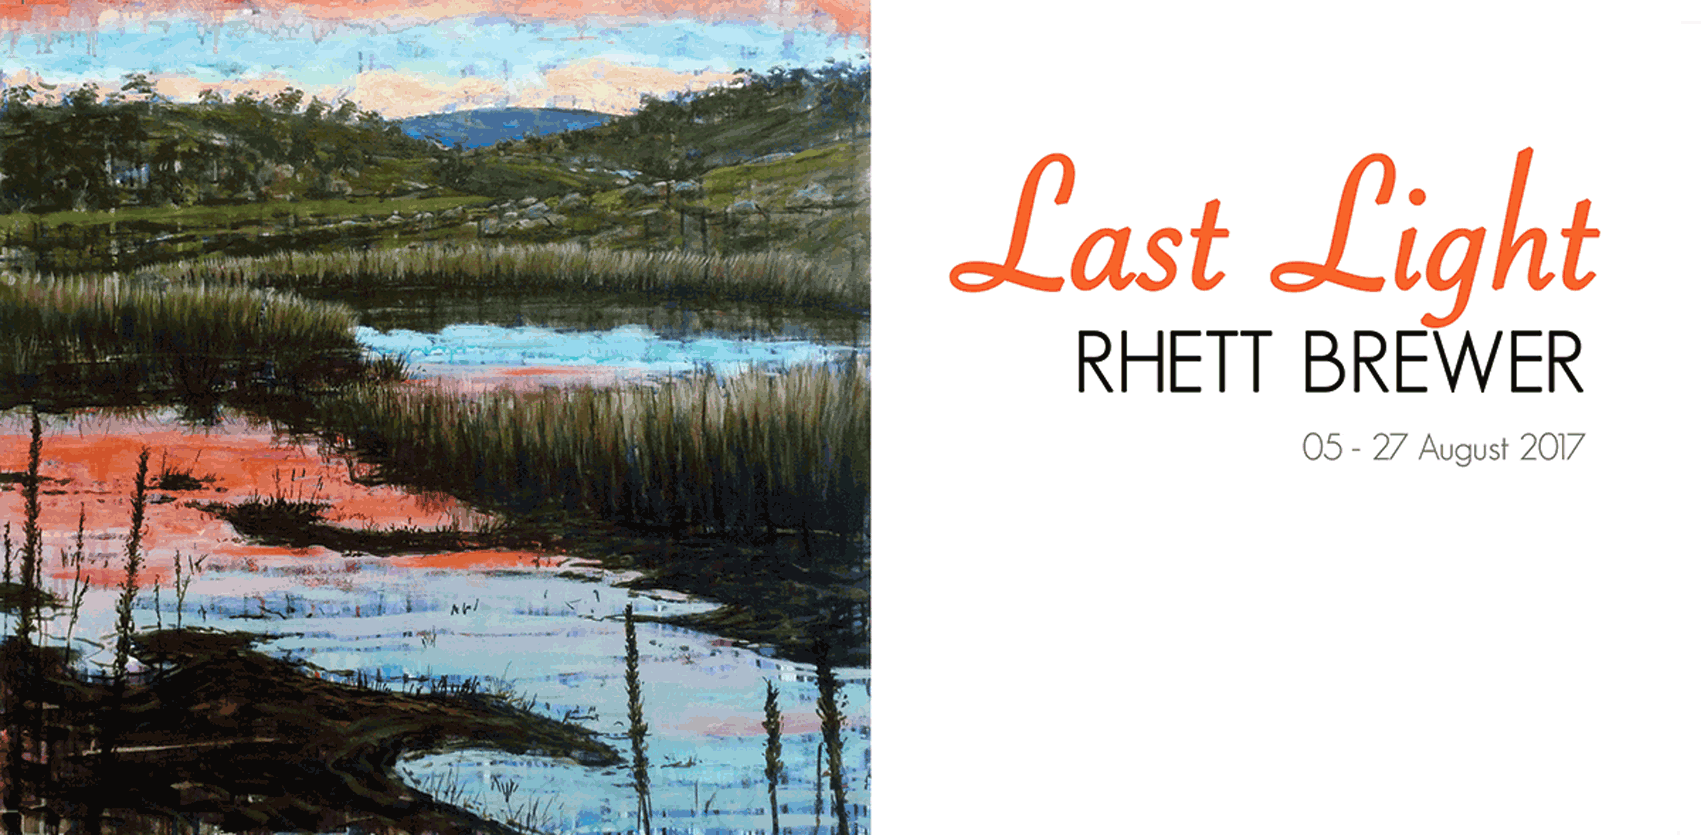 View Exhibition at Artsite Gallery, Sydney: 05 - 27 August 2017 - Last Light - Rhett Brewer